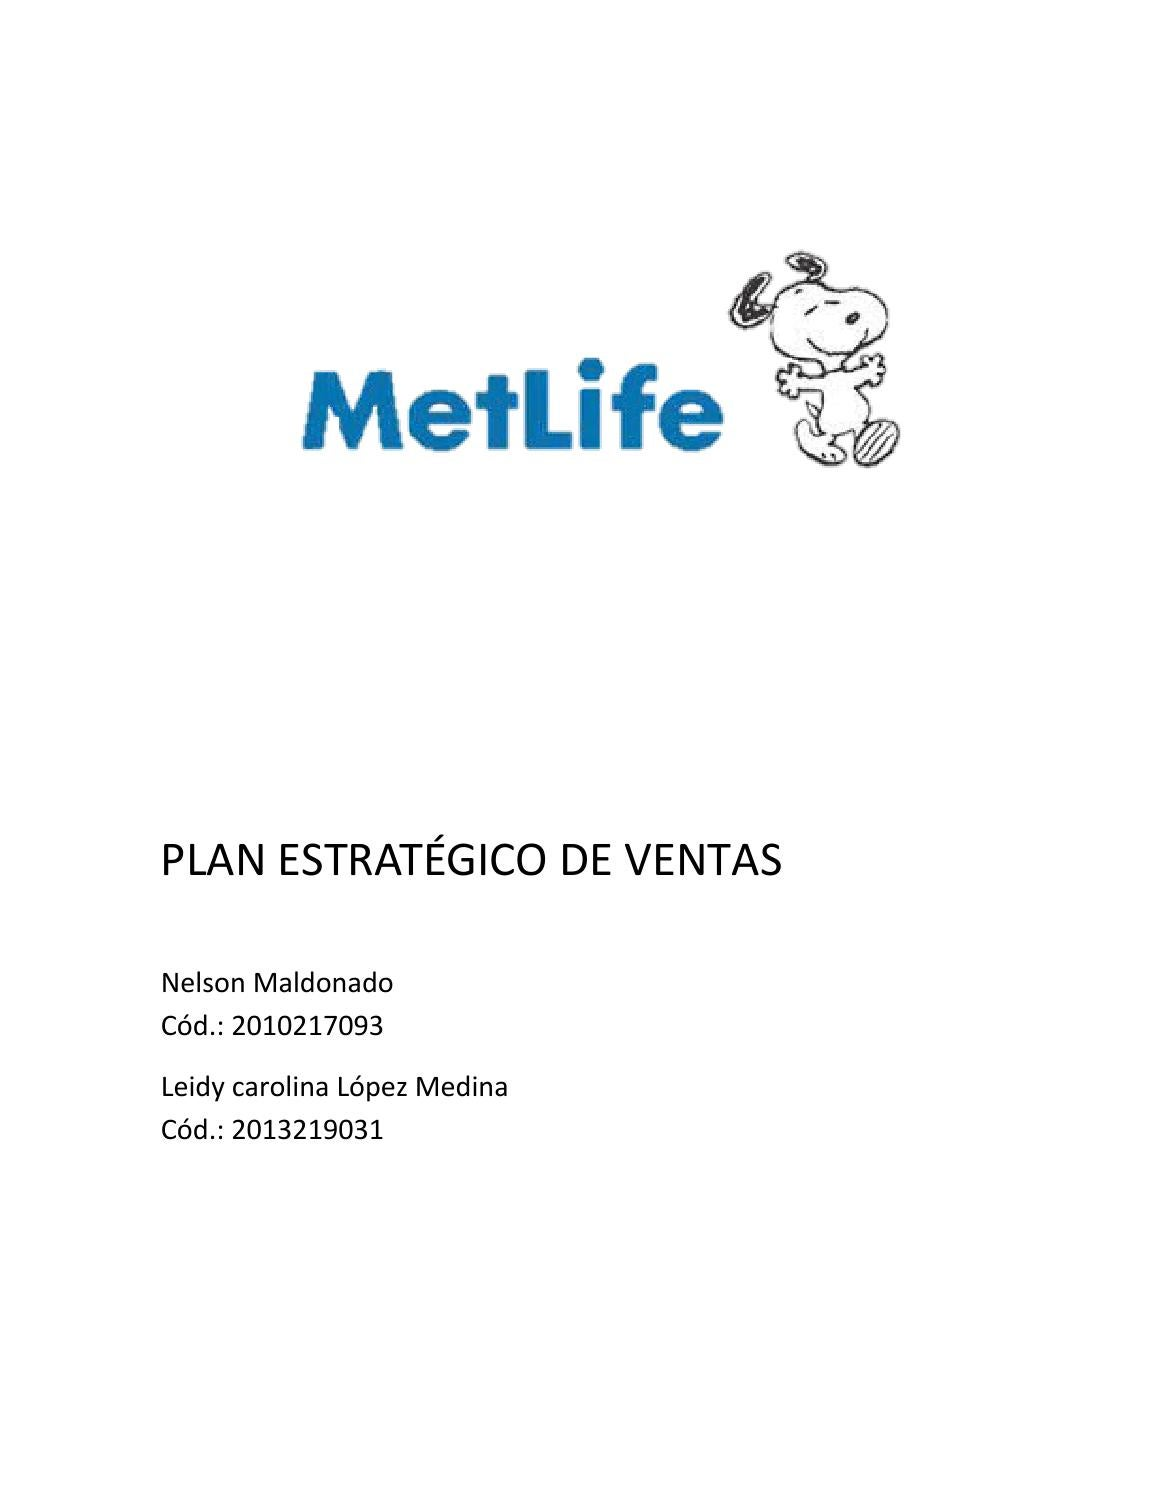 Plan estrategico de ventas MetLife by Steven Martinez - issuu